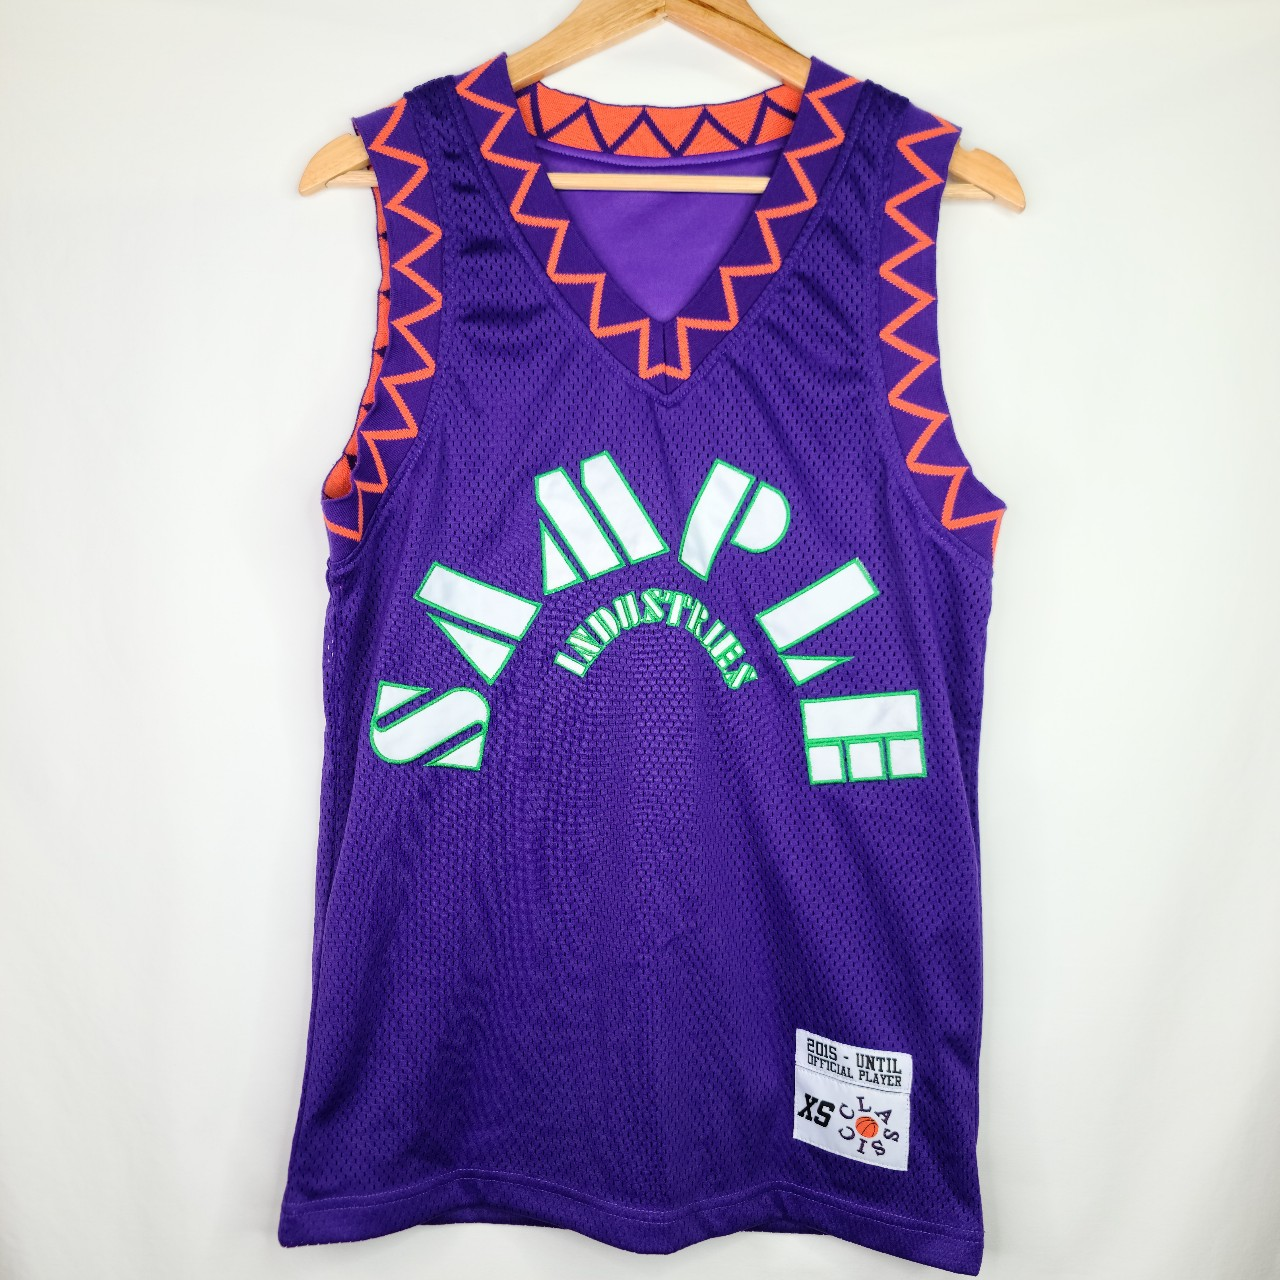 Product Image 1 - Sample Industries Mesh Jersey Purple